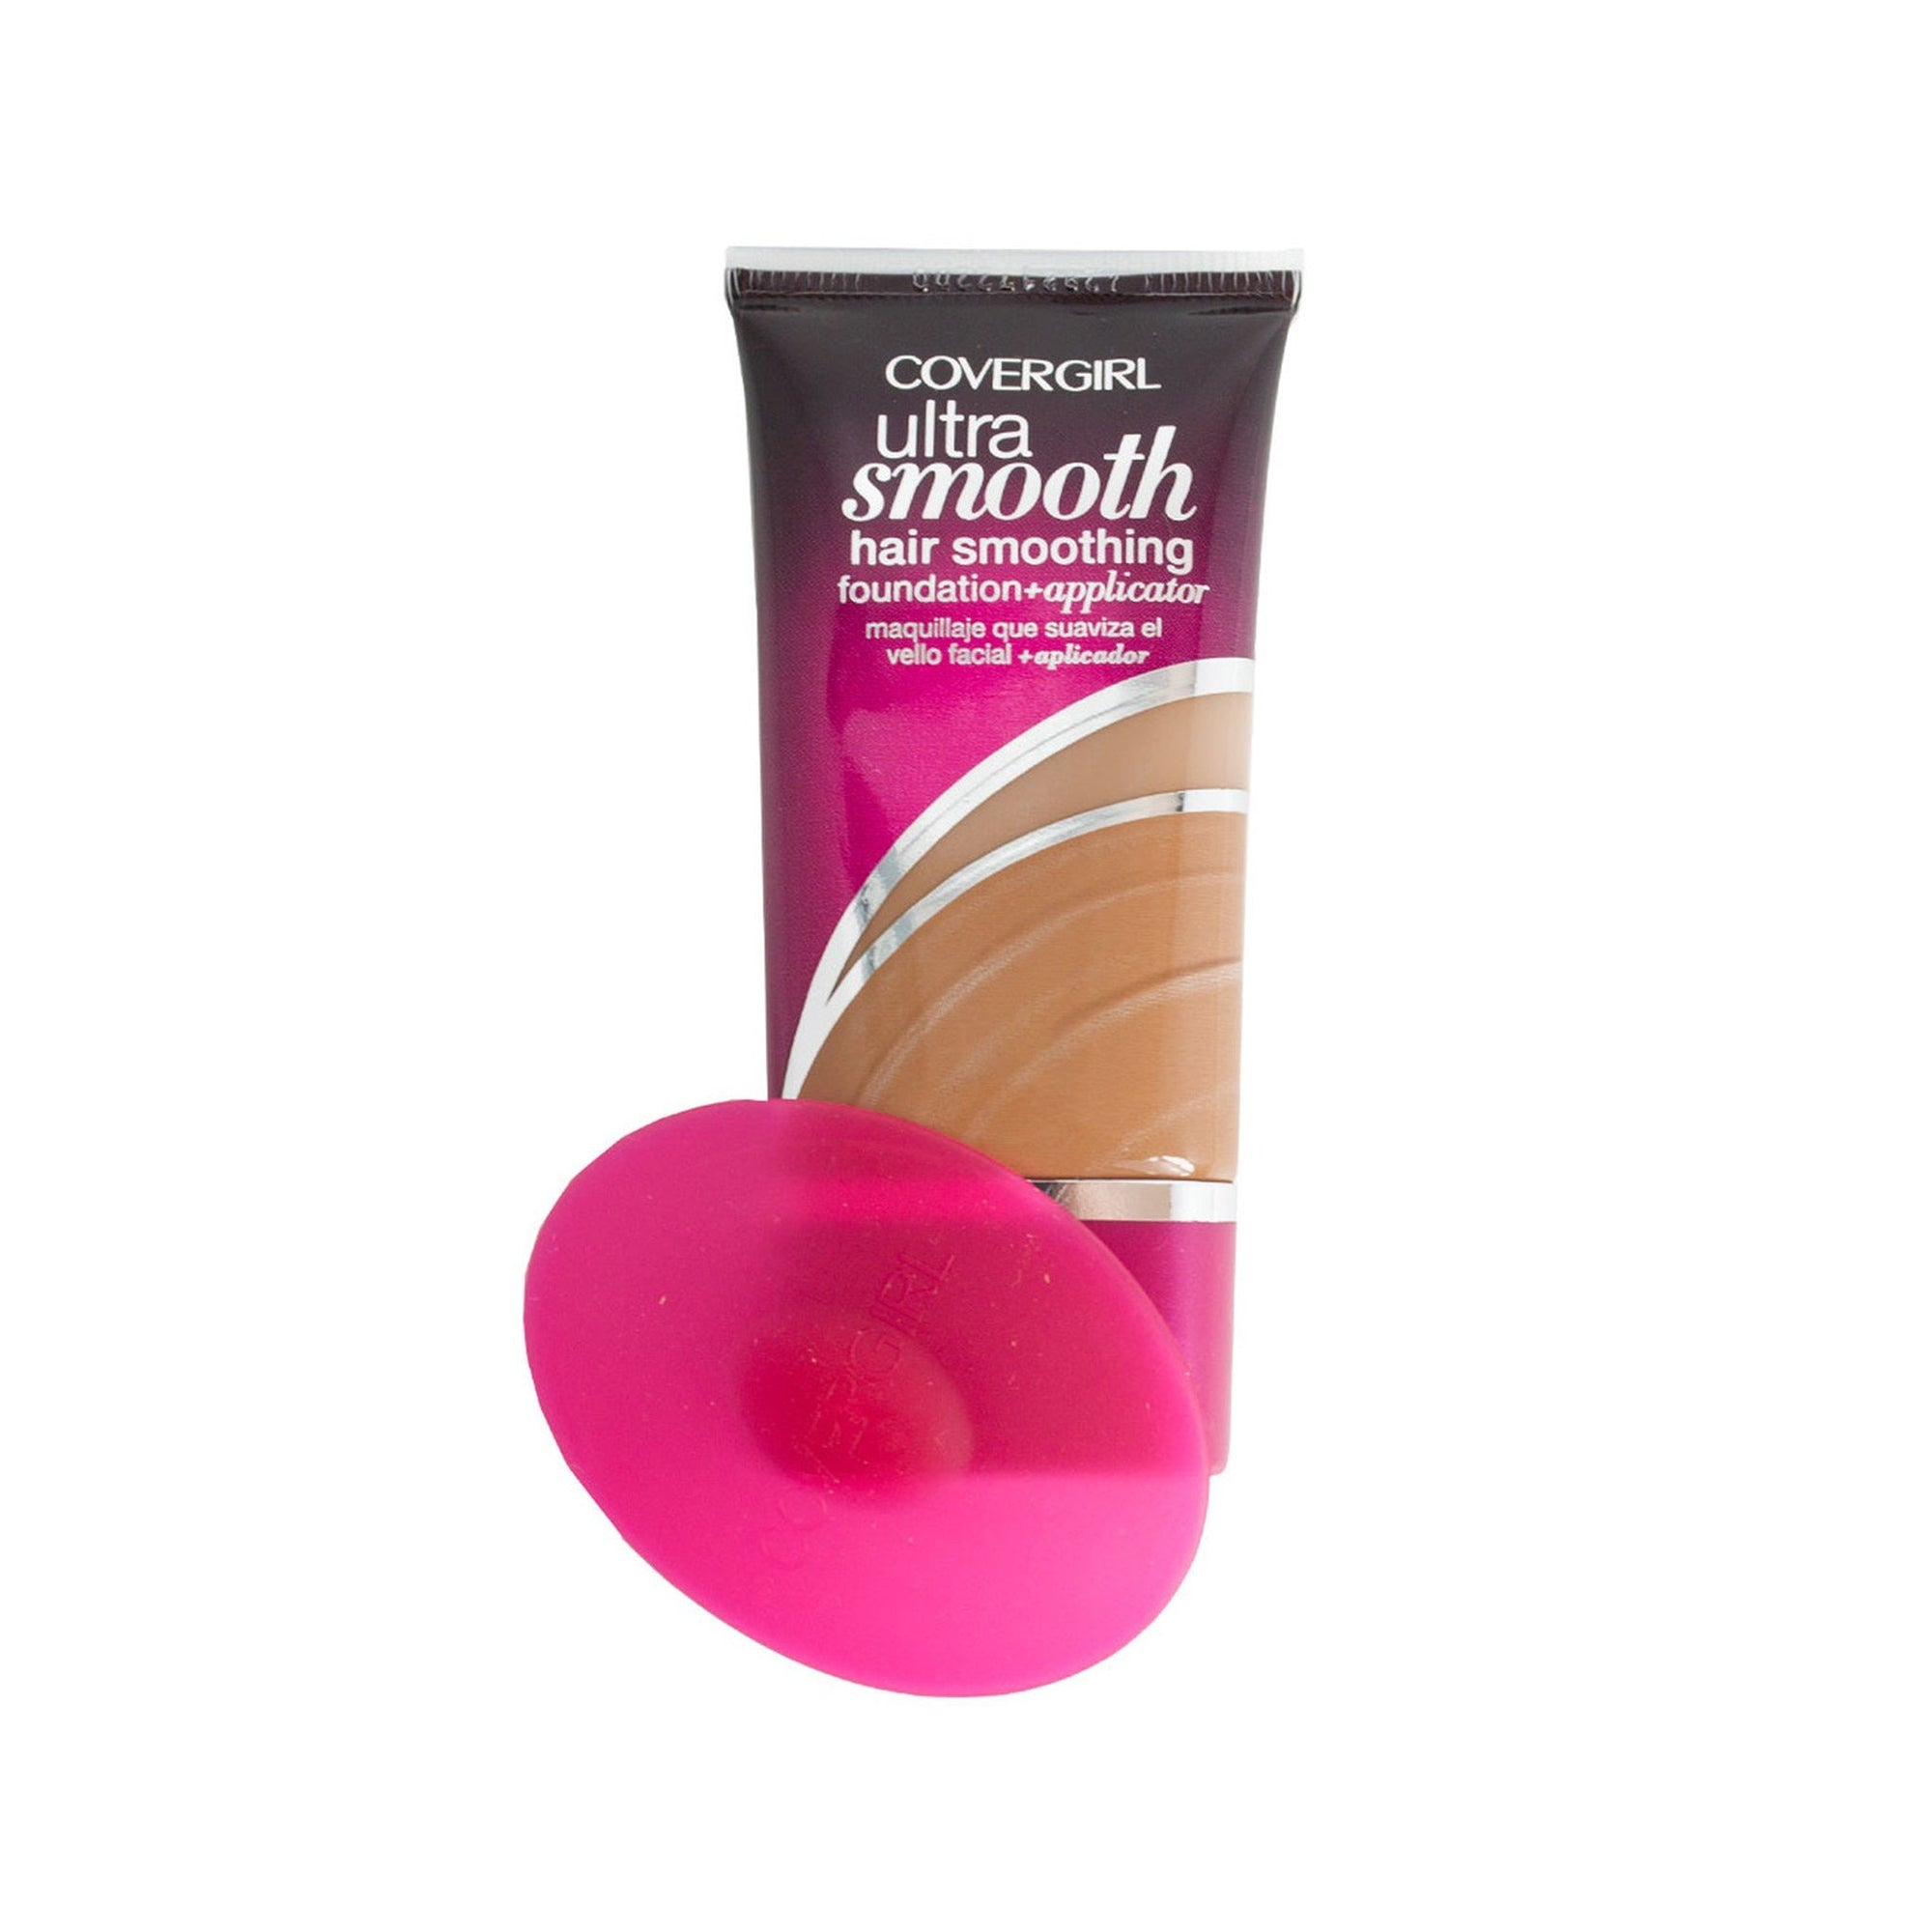 Covergirl Ultra Smooth Foundation